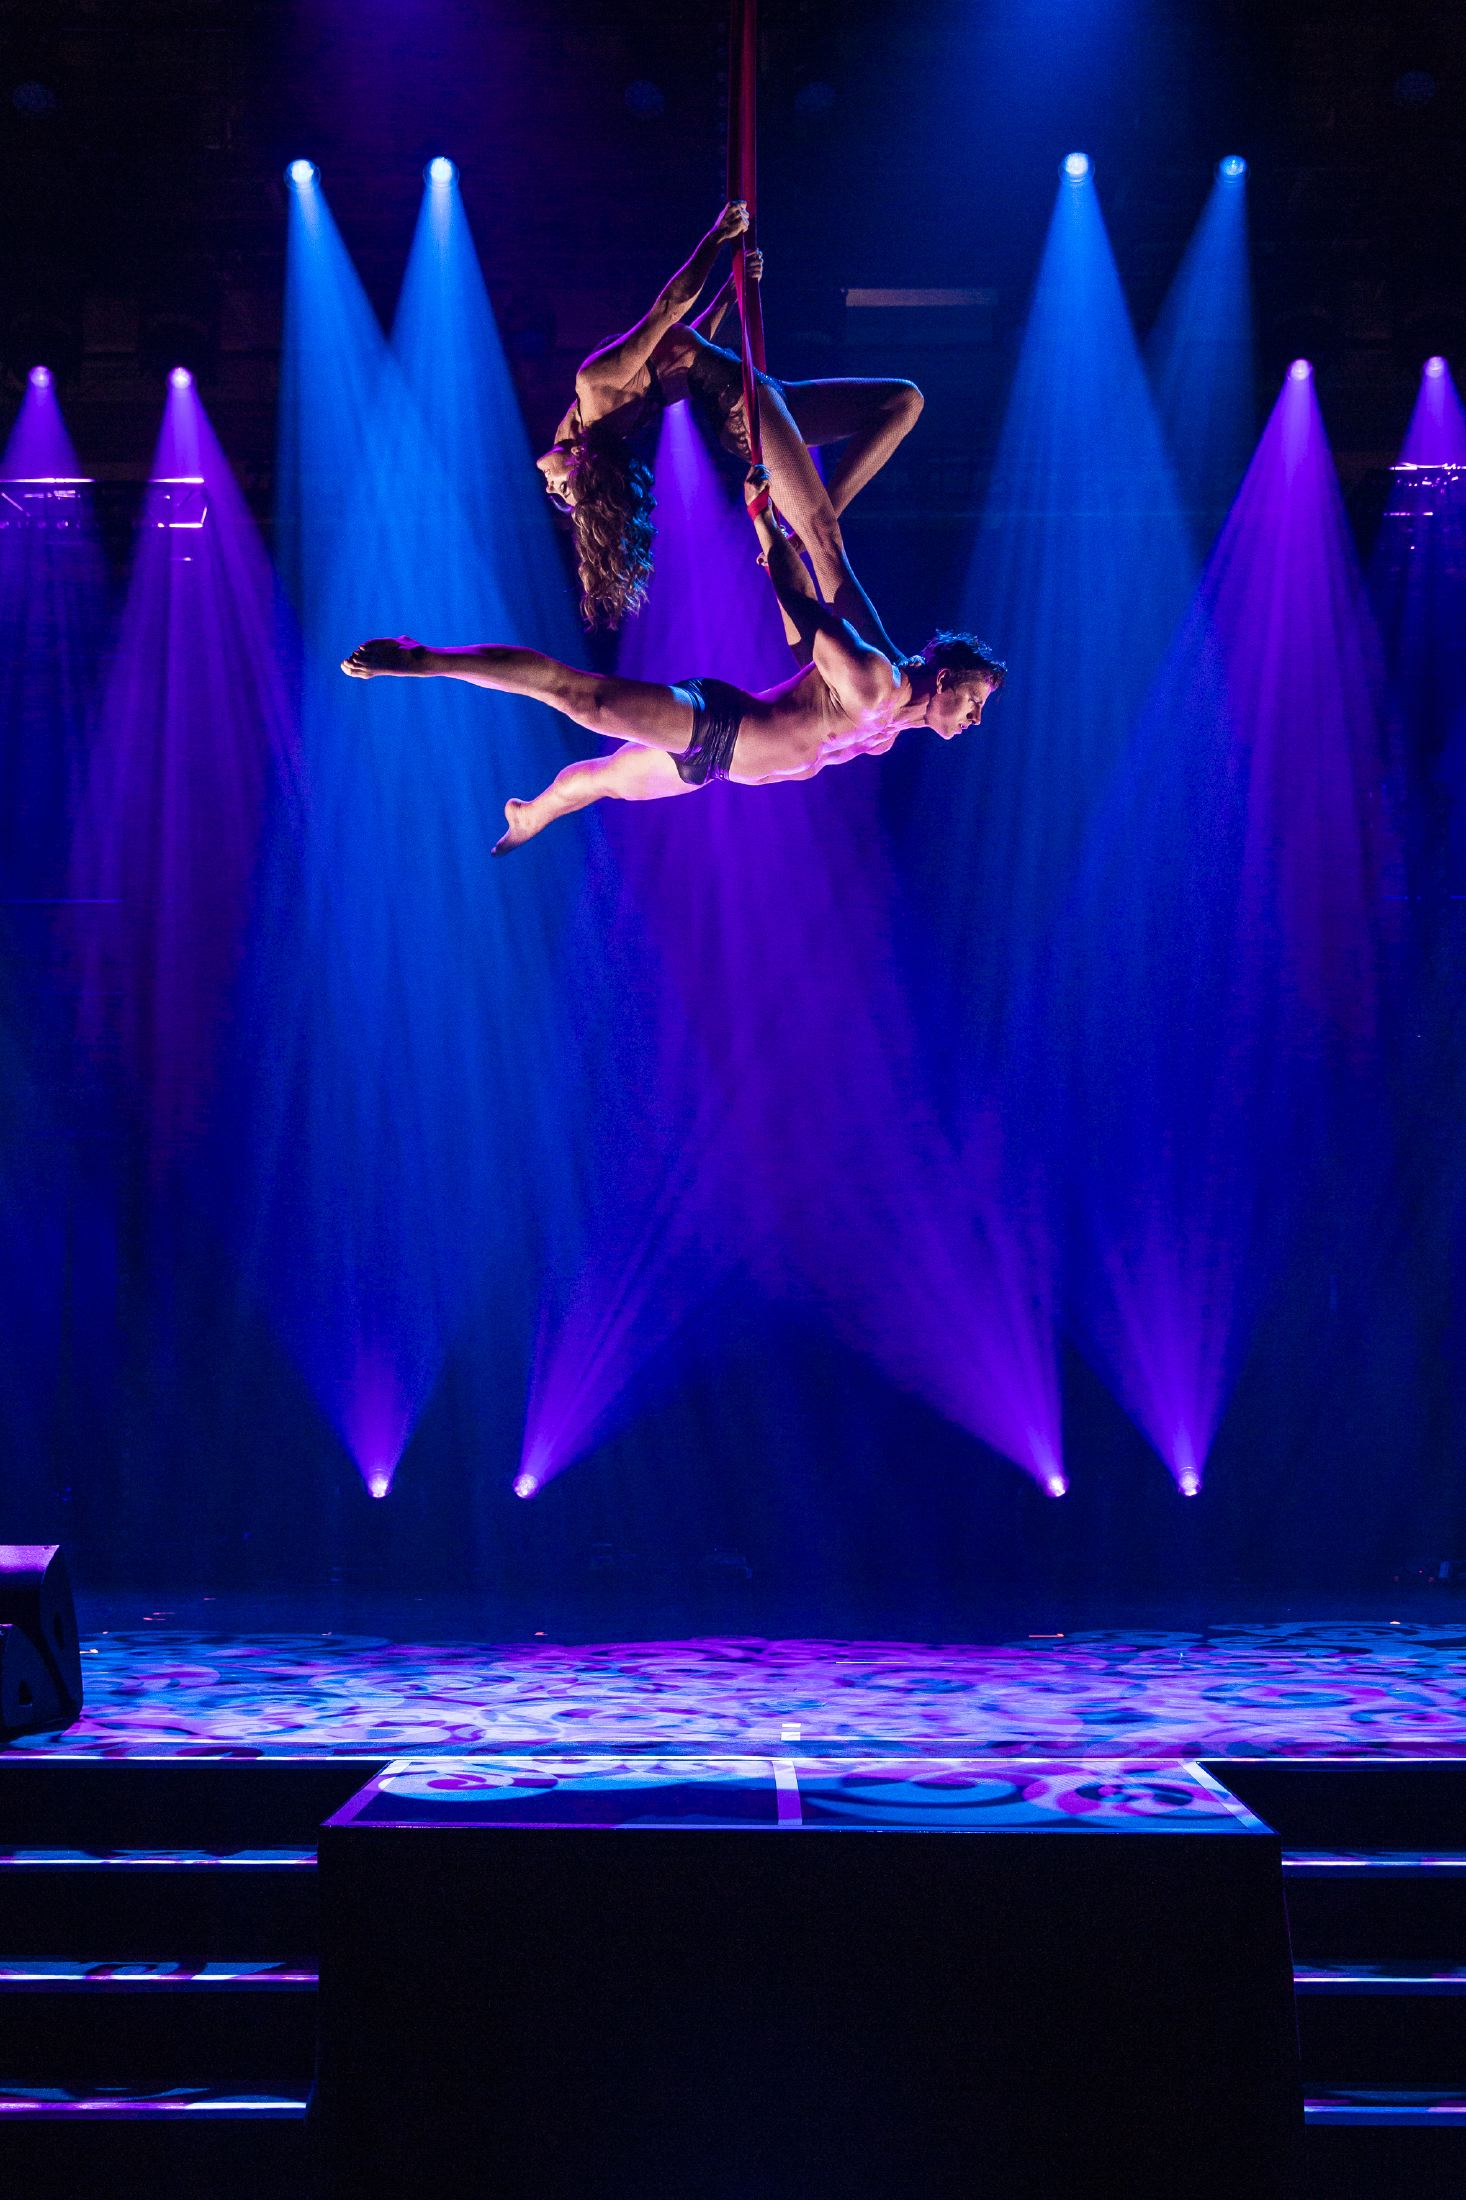 aerialstraps duo, duo strapaten, acrobatic couple, luftartistik showact